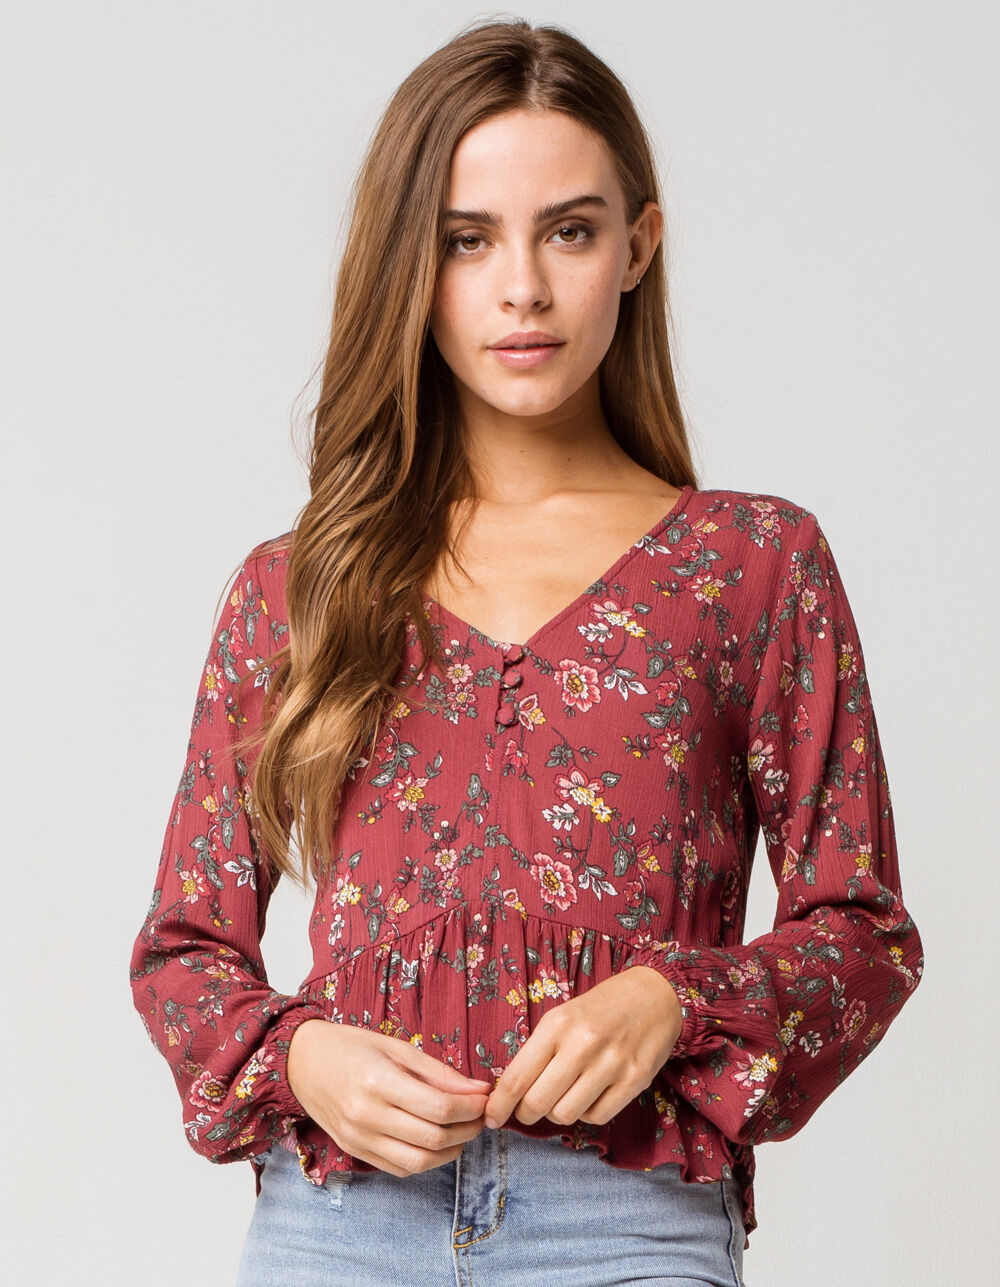 Image of MIMI CHICA Floral Paisley Babydoll Top